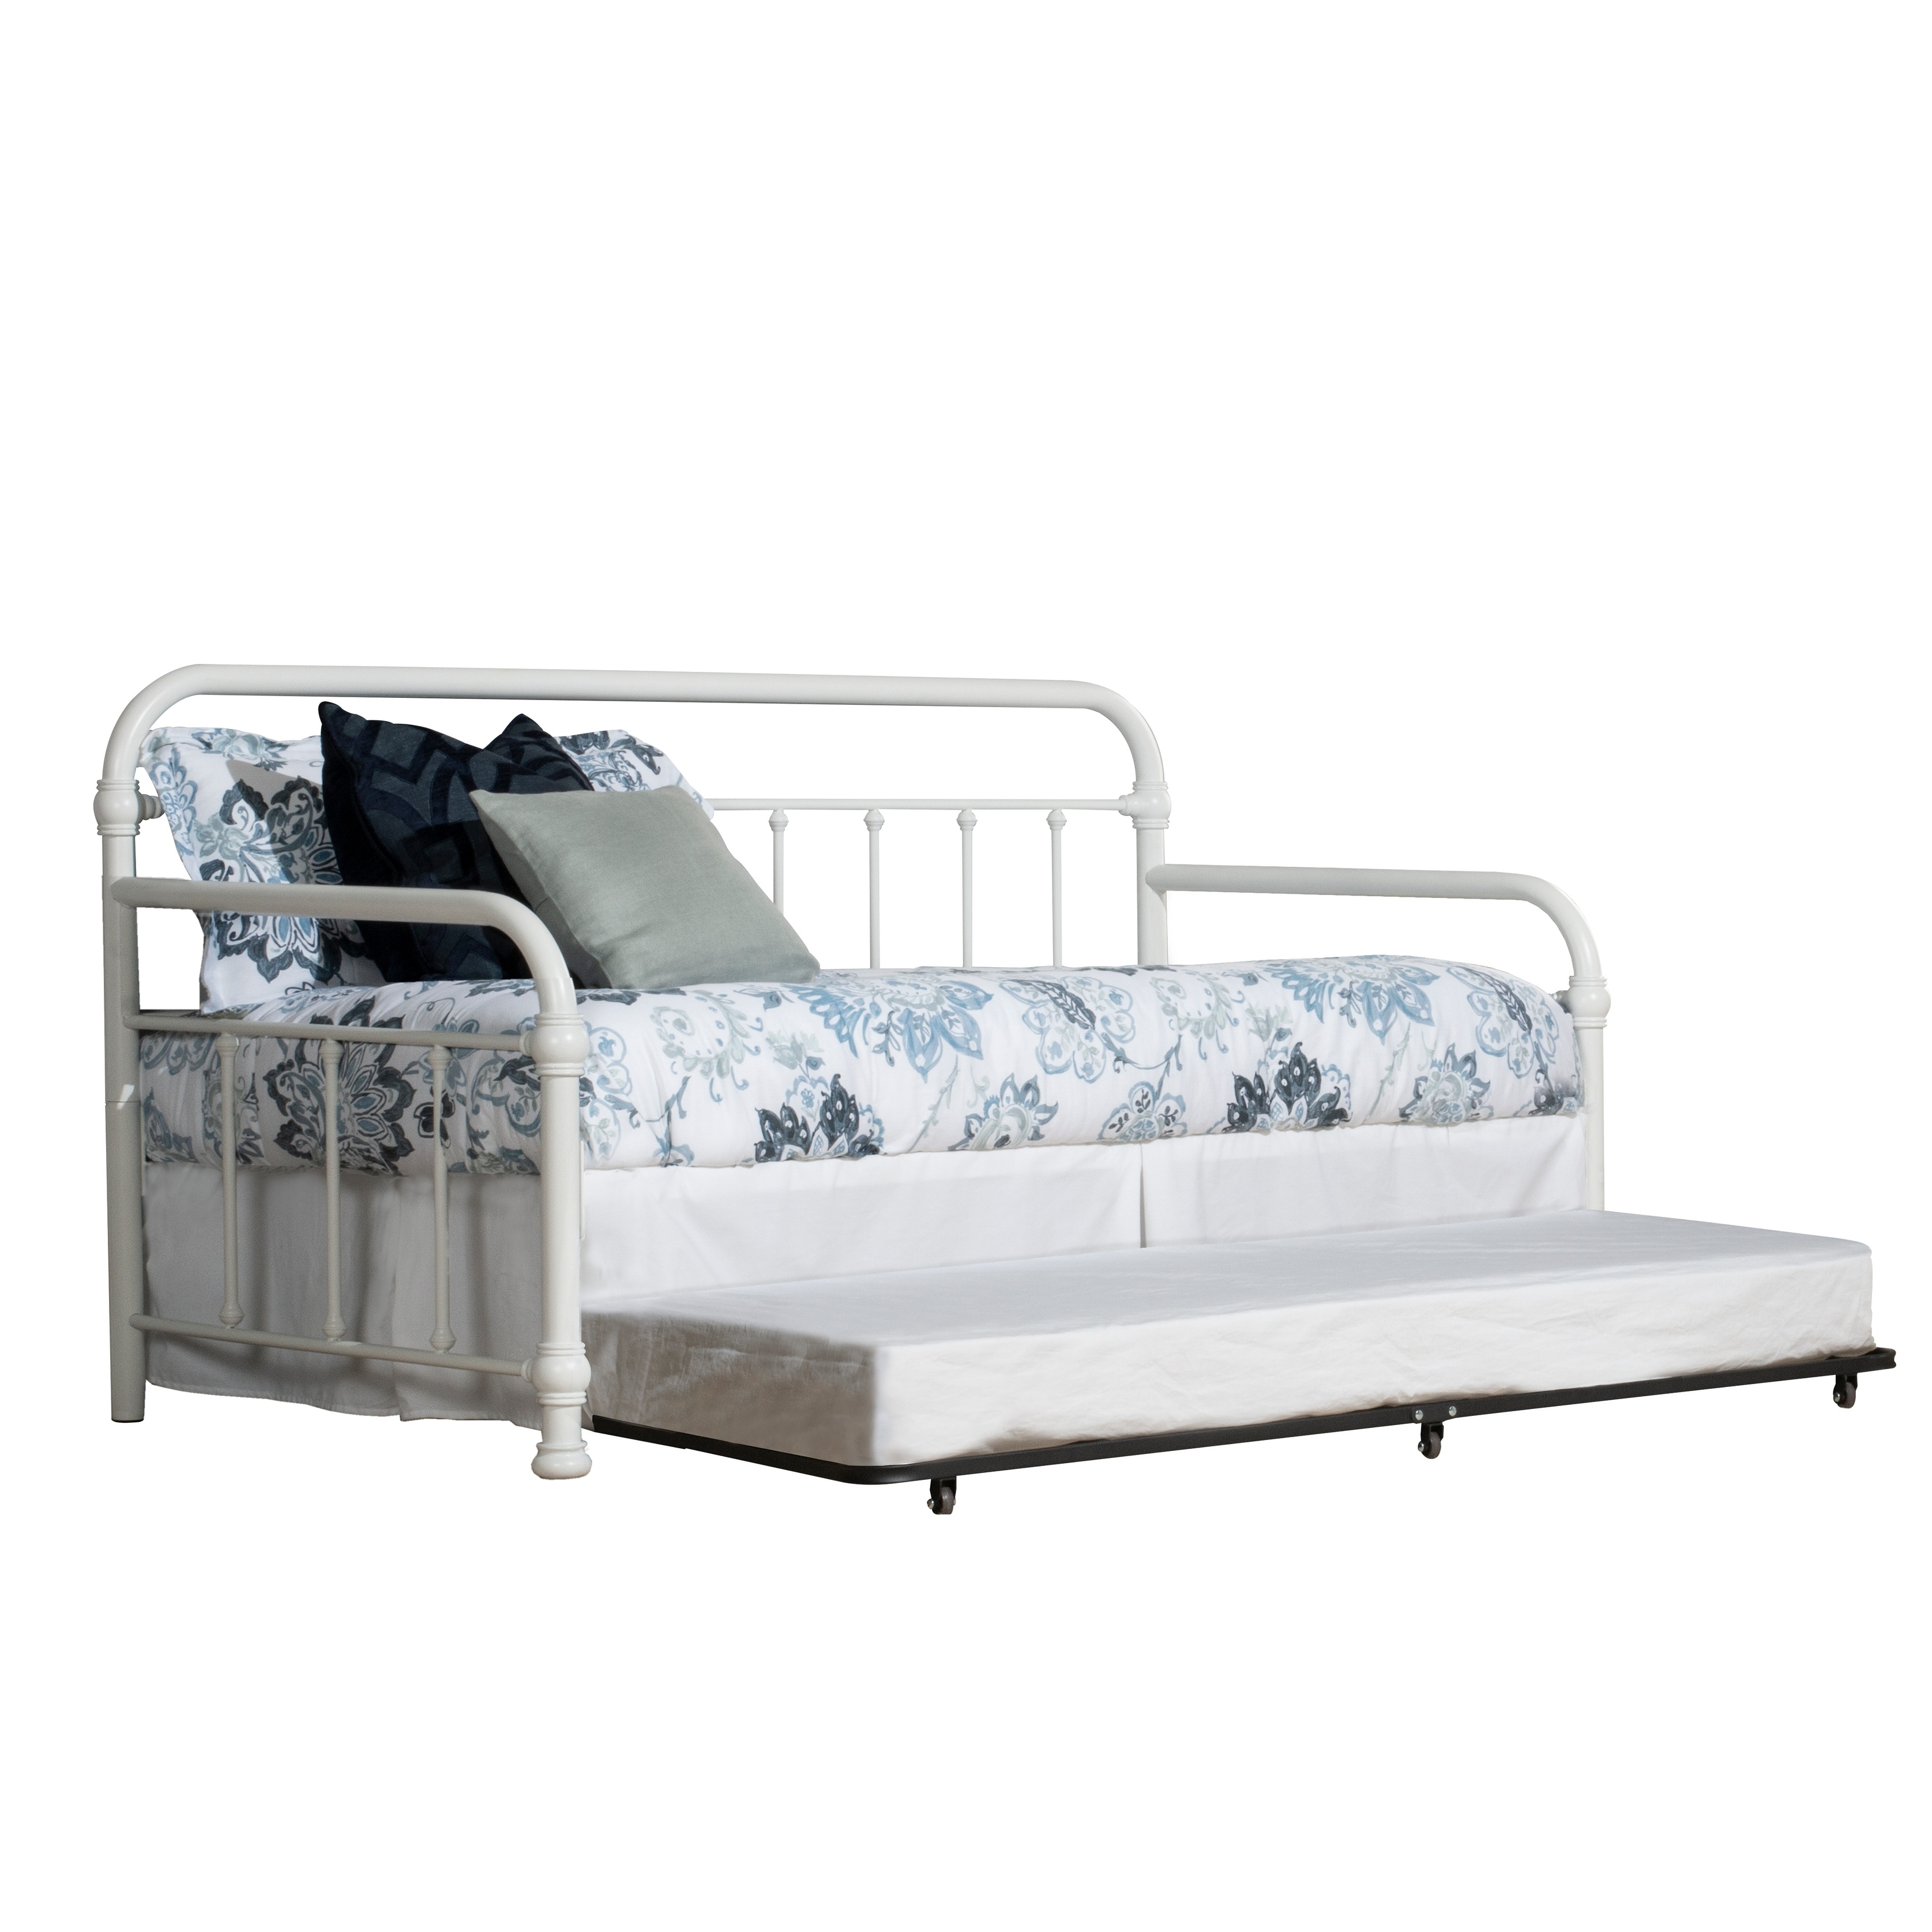 - Shop Copper Grove Dabnik White Twin Daybed With Trundle - On Sale